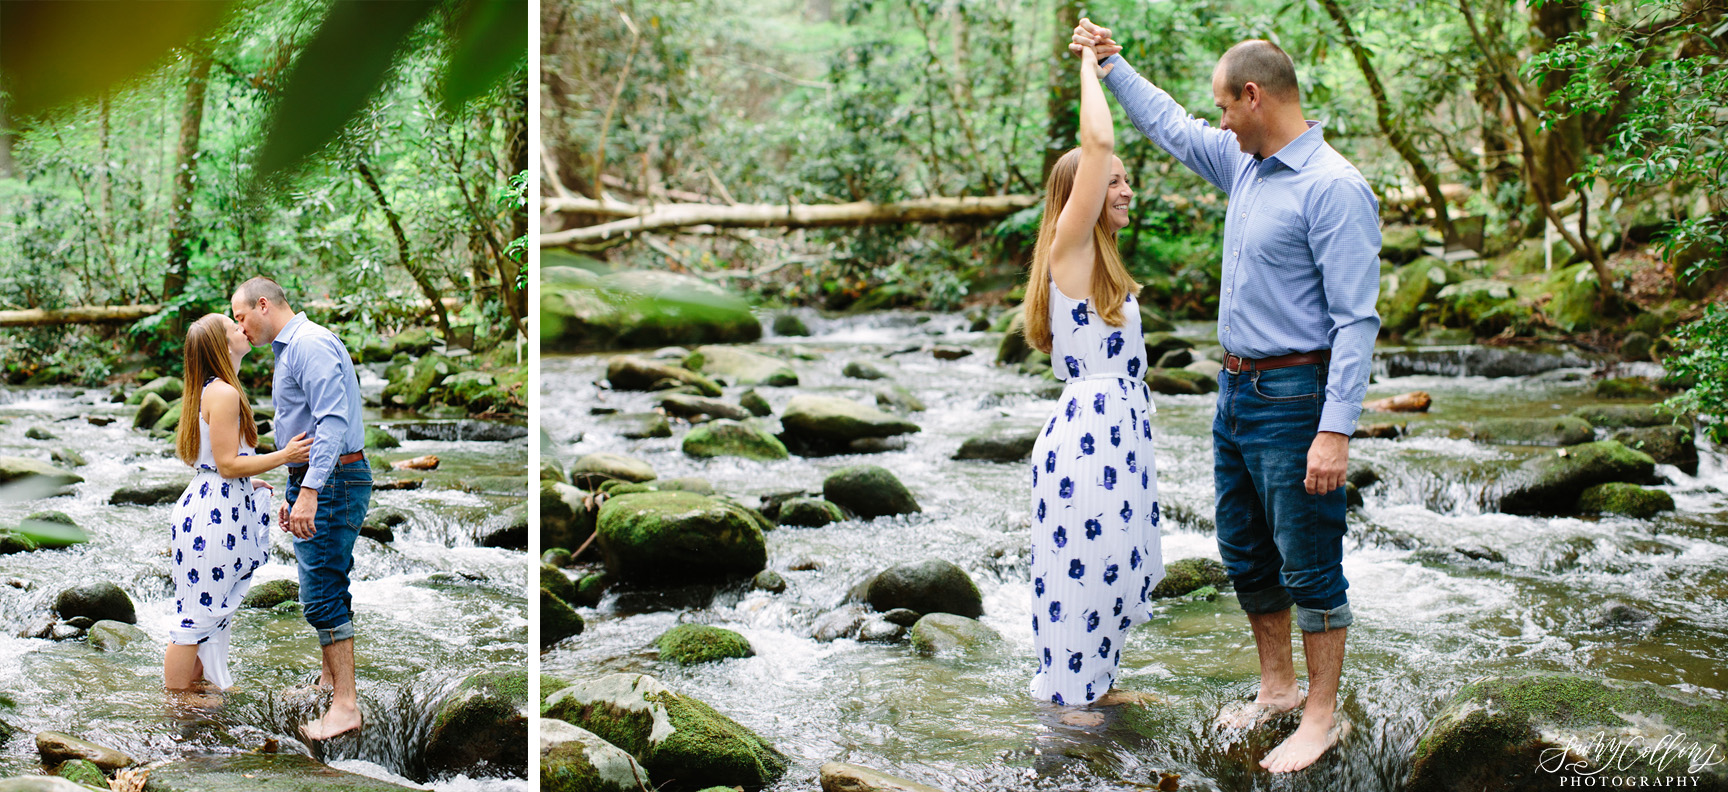 poses, couples, outdoor, Mynatt park, Knoxville, Tennessee, engagement, sunset, evening, love, vibrant, colorful, bright, creative, romantic, natural, light and airy, natural light, passion, inspiration, intimate, outfits, fountain, woods, river, park